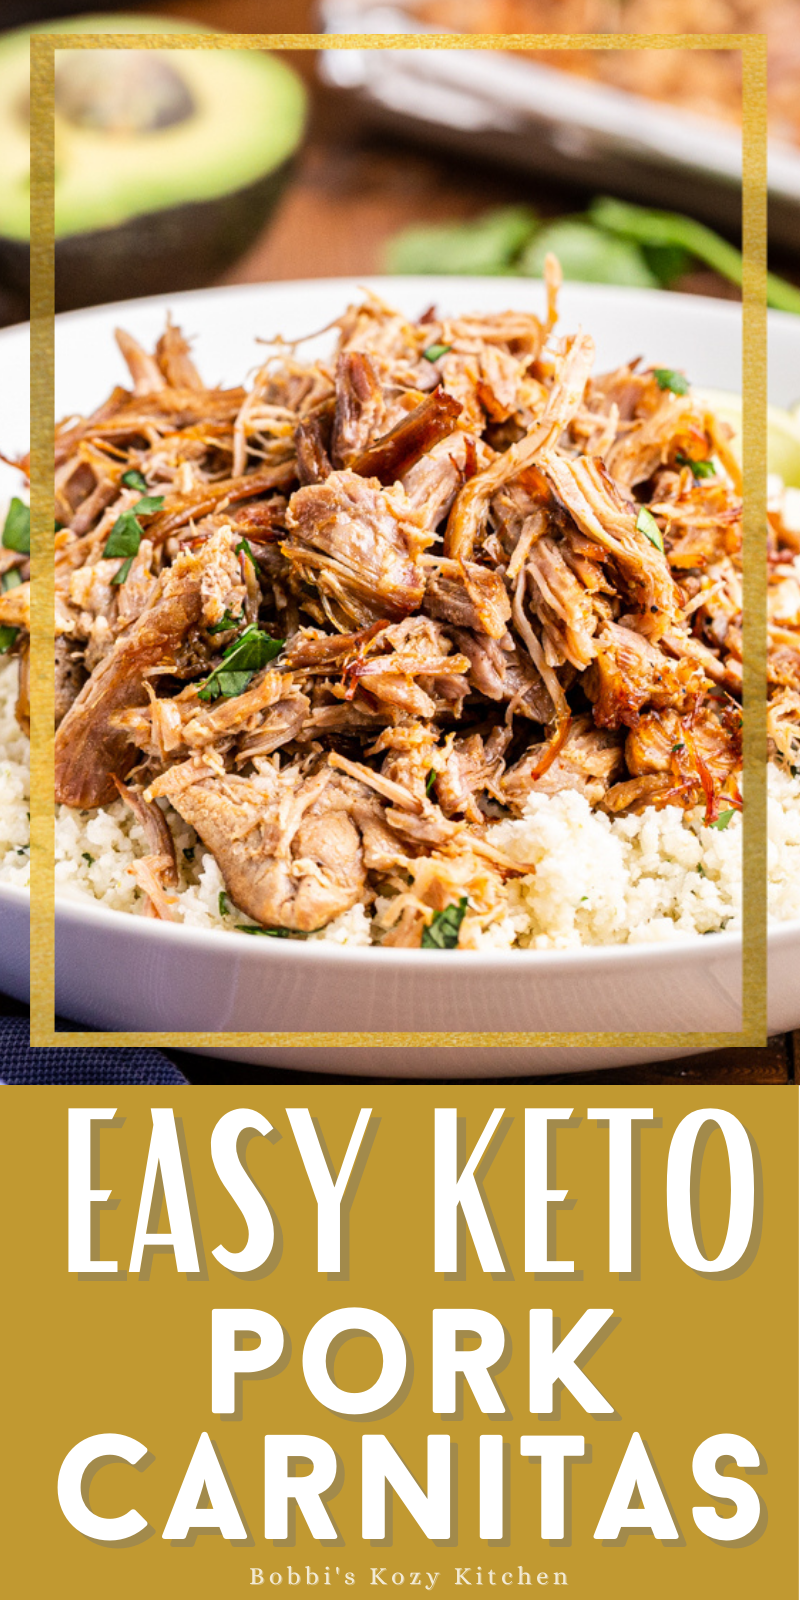 Easy Keto Pork Carnitas (Instant Pot and Slow Cooker) - This easy keto pork carnitas recipe creates the juiciest, most flavorful carnitas you can make, all while staying low carb. Even if you aren't on the keto diet, this carnitas recipe is a MUST make! #keto #lowcarb #glutenfree #mexican #instantpot #slowcooker #pork #carnitas #recipe